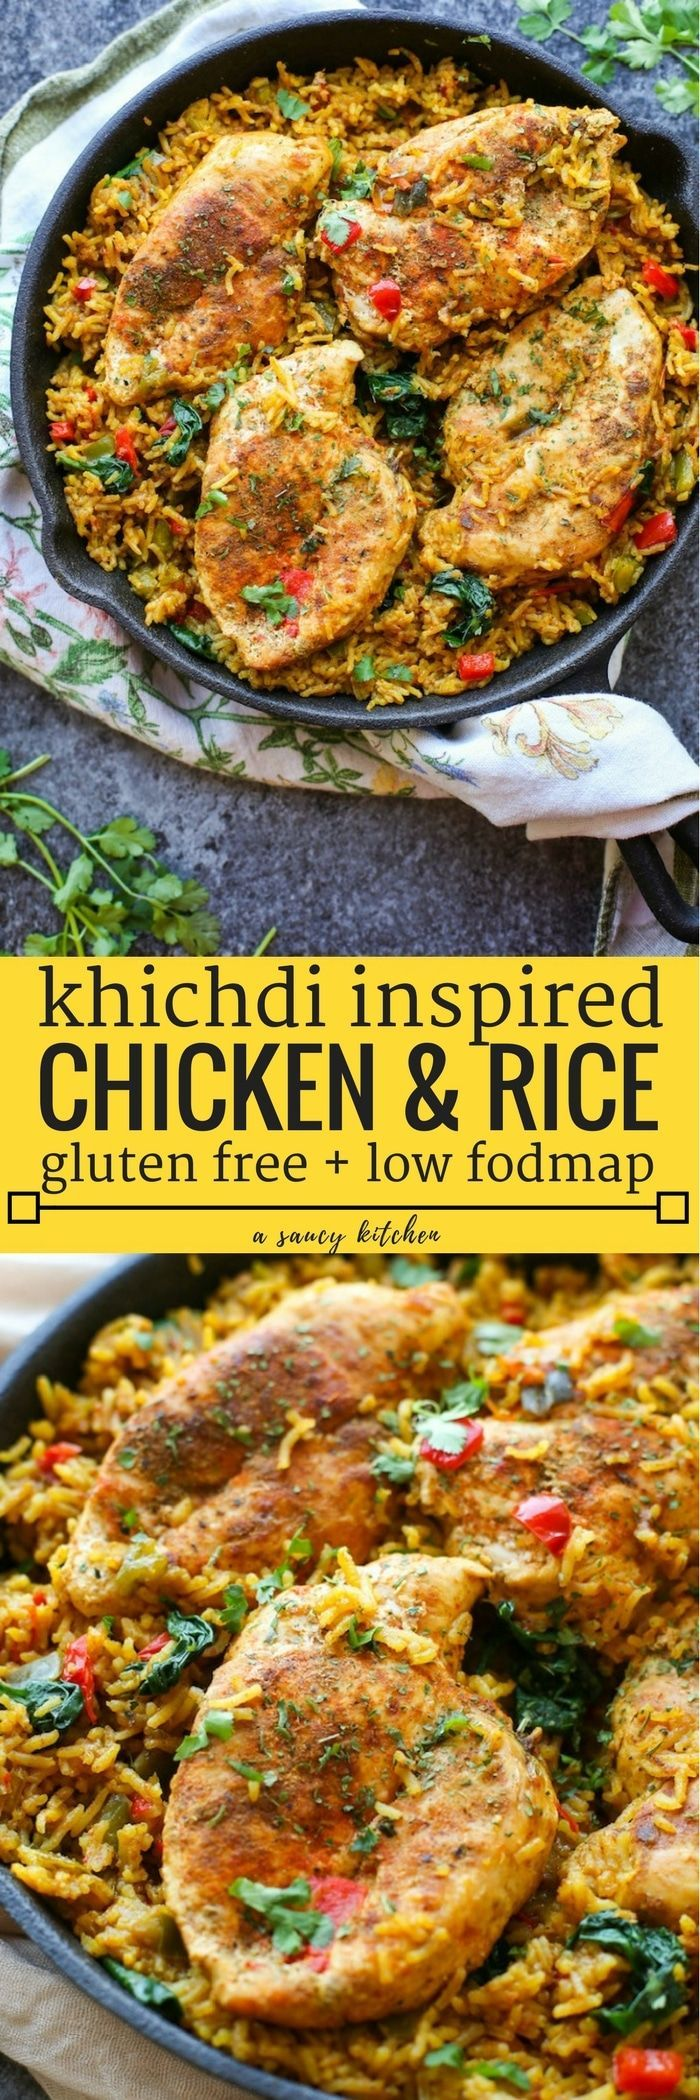 Khichdi Inspired One Pot Low FODMAP Chicken and Rice packed with bell peppers, tomato, ginger & spices | Low FODMAP + Dairy Free